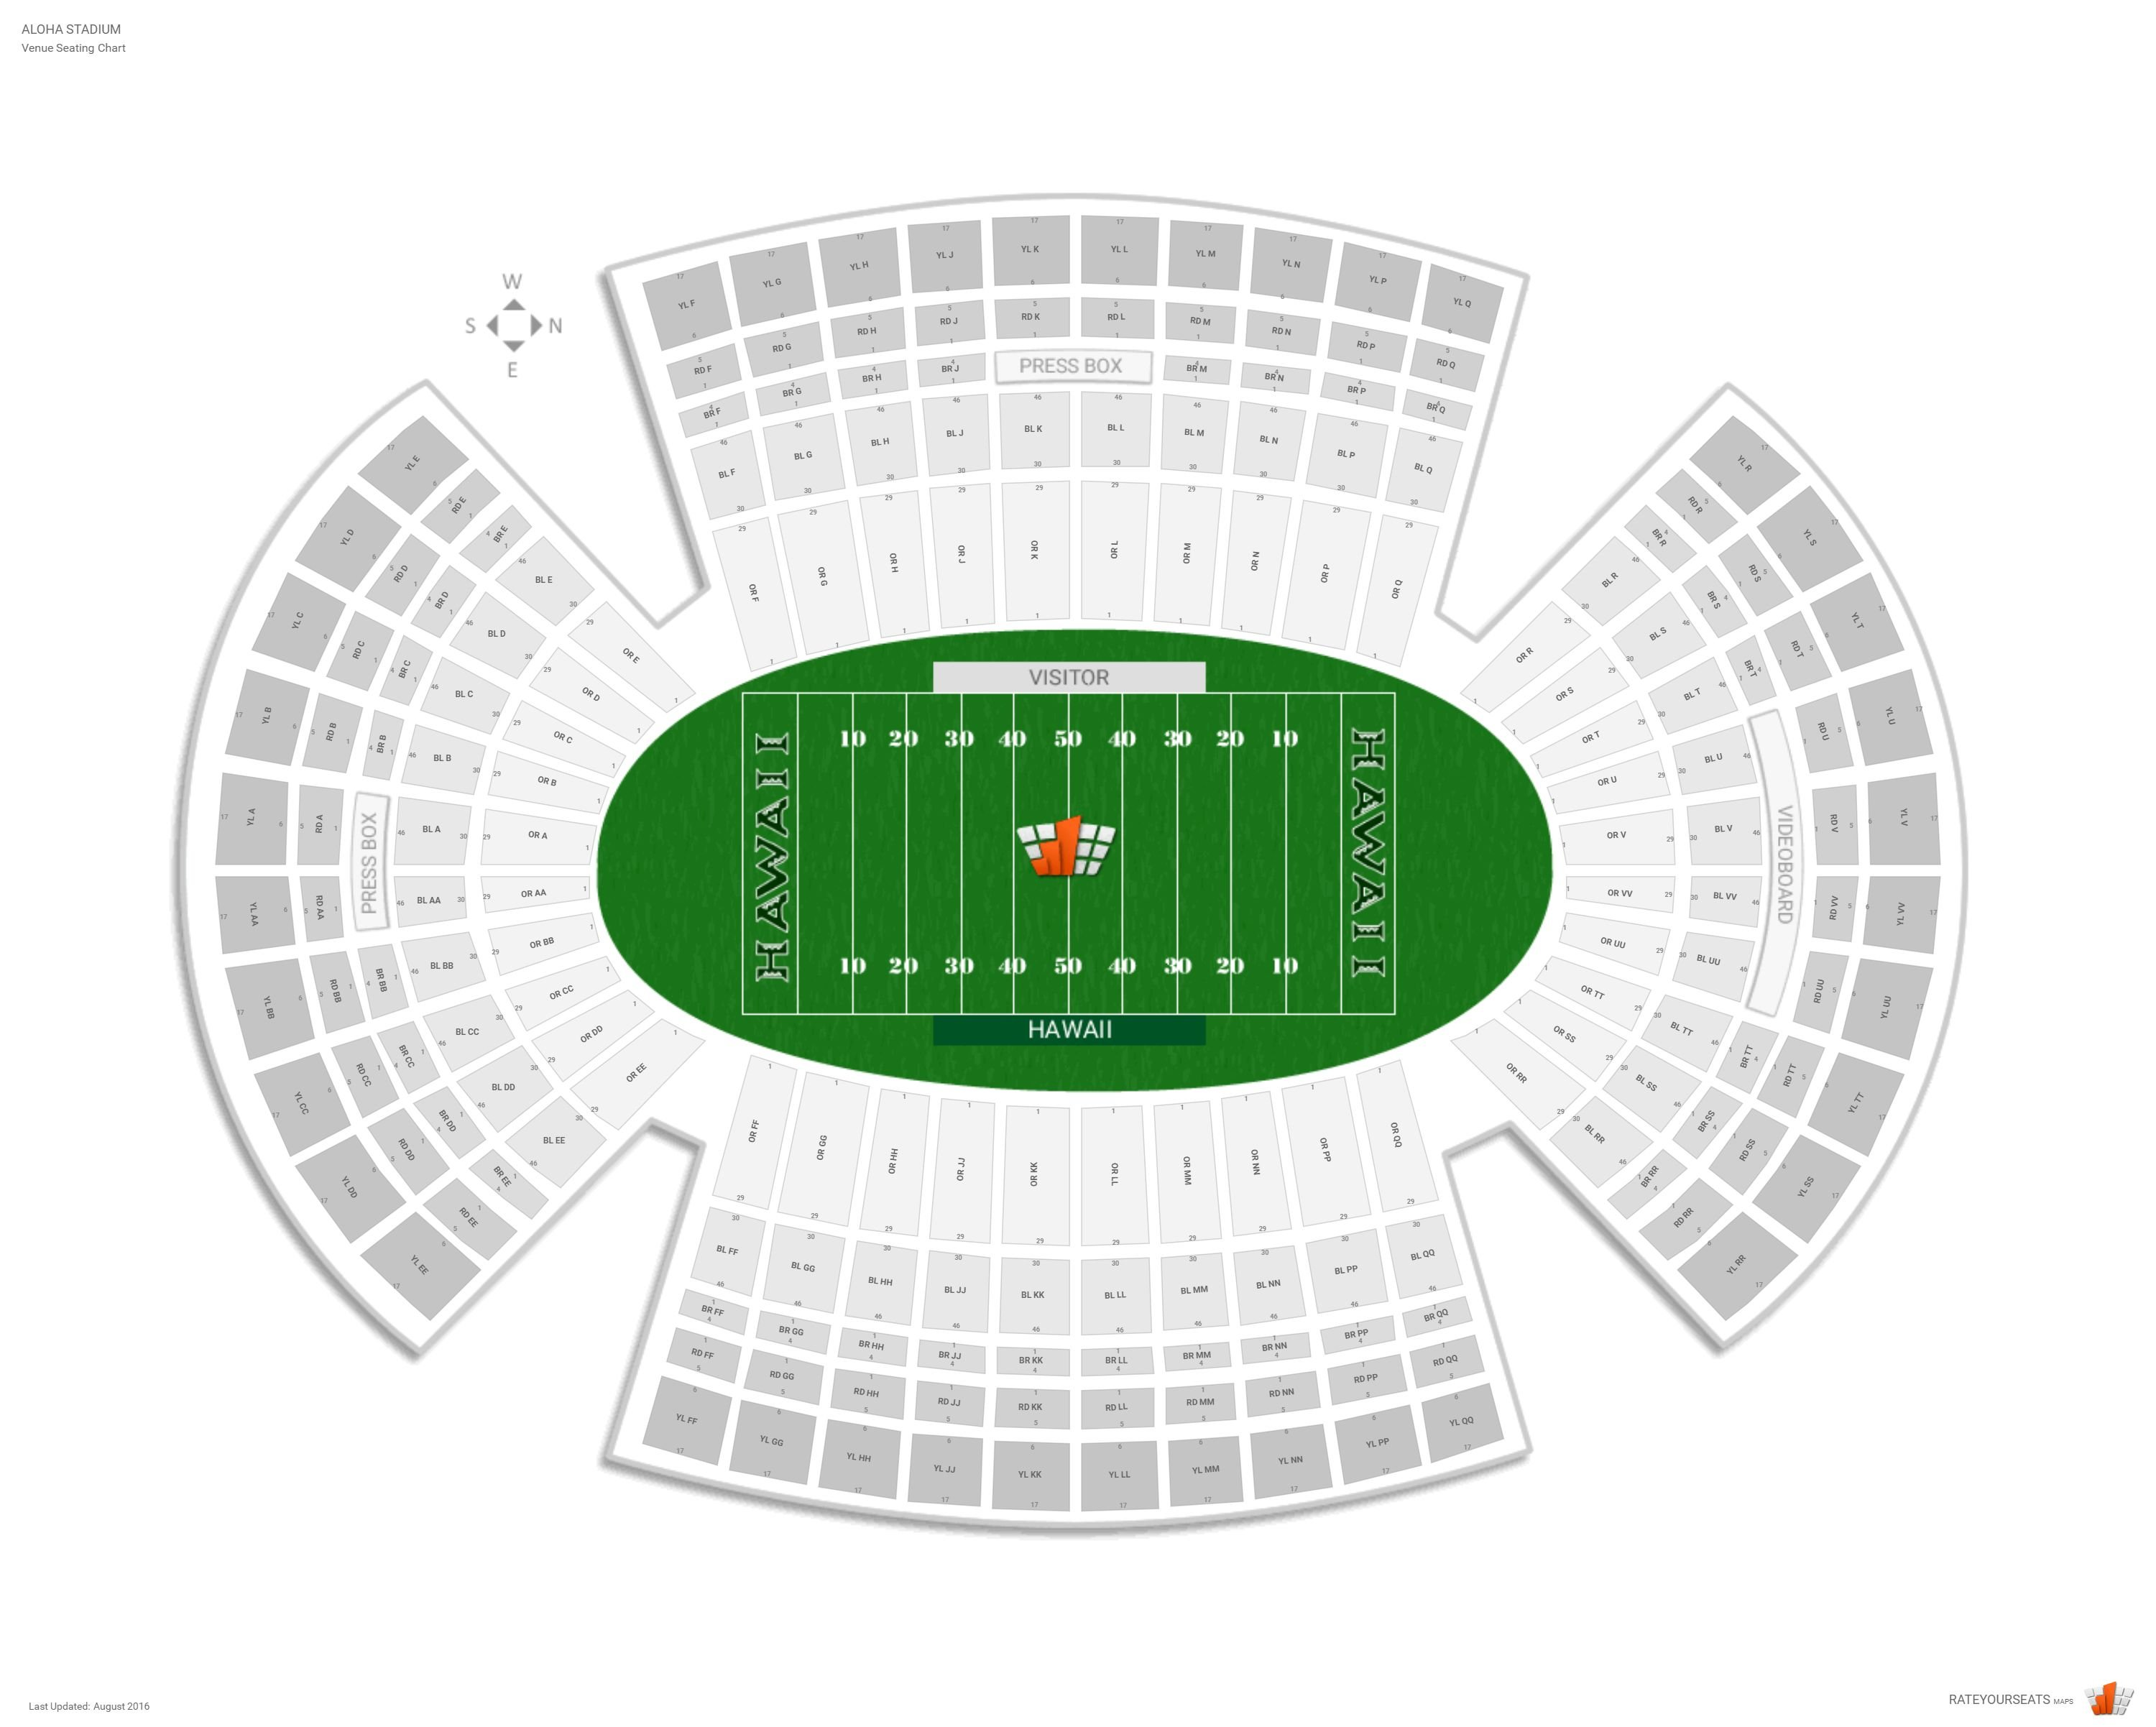 Aloha Stadium Hawaii Seating Guide Rateyourseats Com